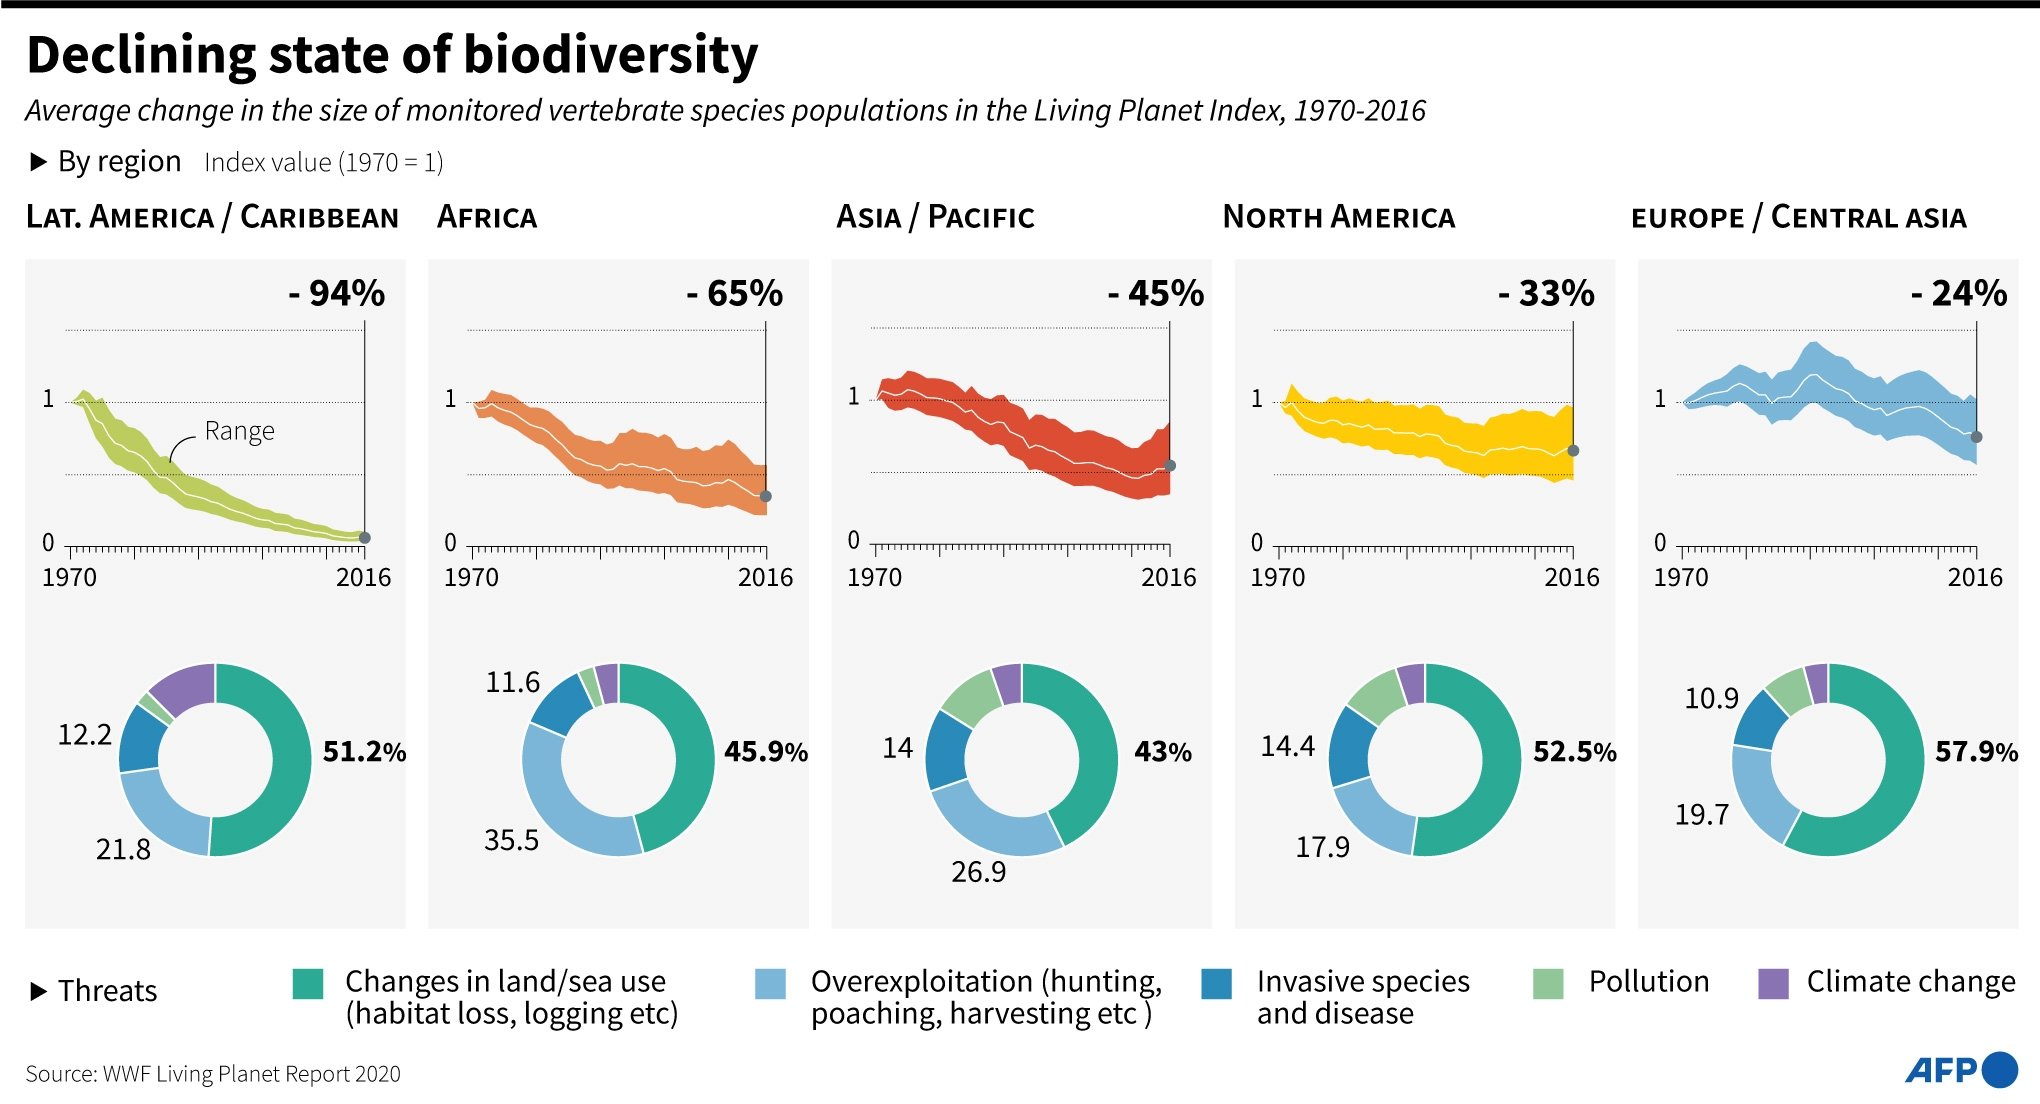 Chart showing the declining state of biodiversity by world regions, based on data from WWF Living Planet Report 2020.